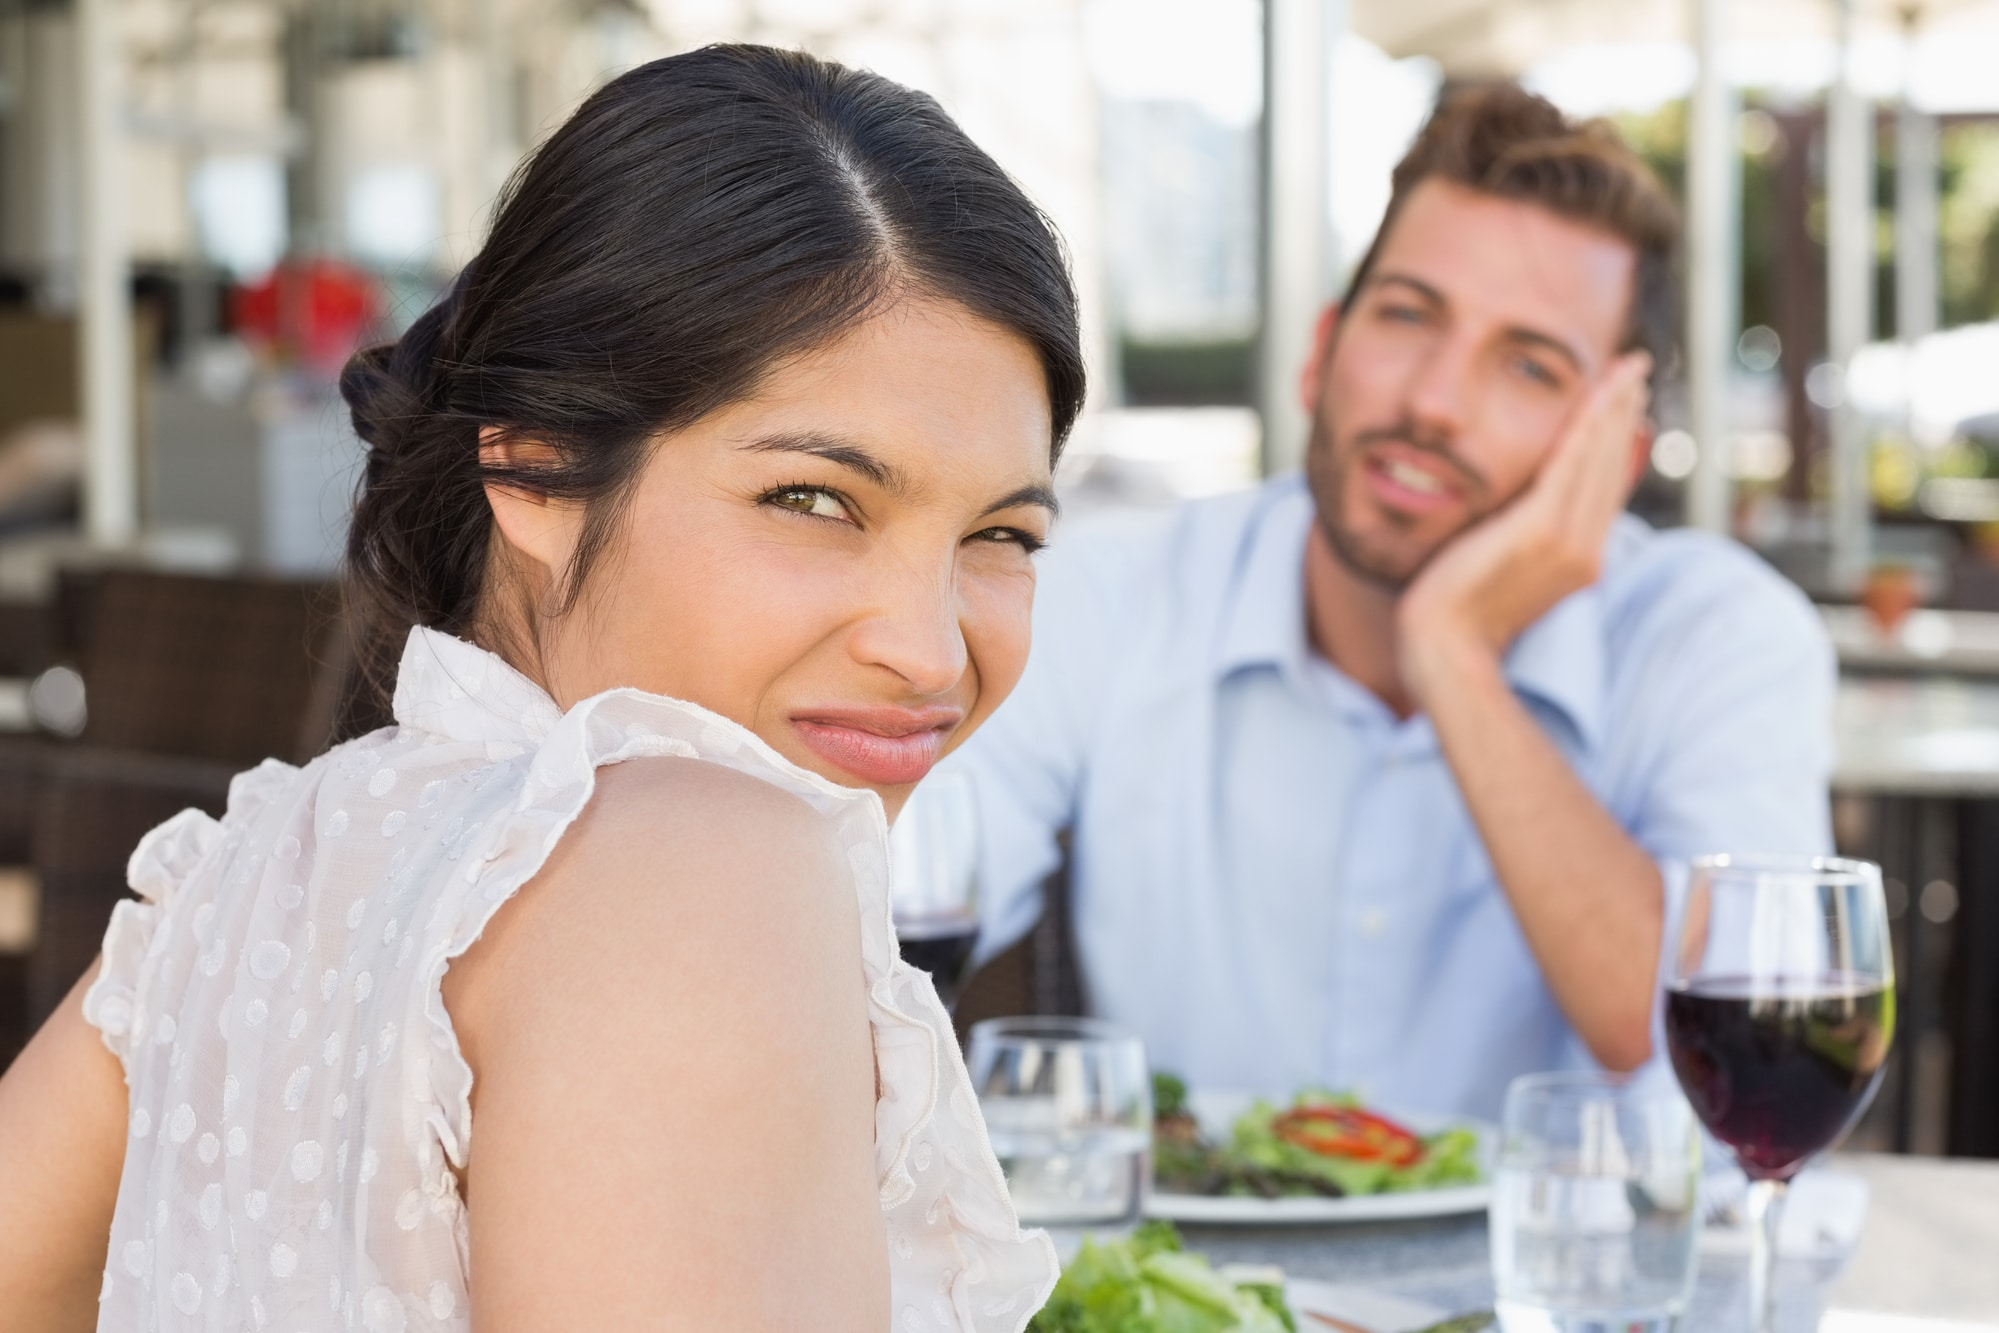 DATING SUCKS! 5 Ways To Get Off The Dating Rollercoaster (And Still Find Your Guy ❤️)